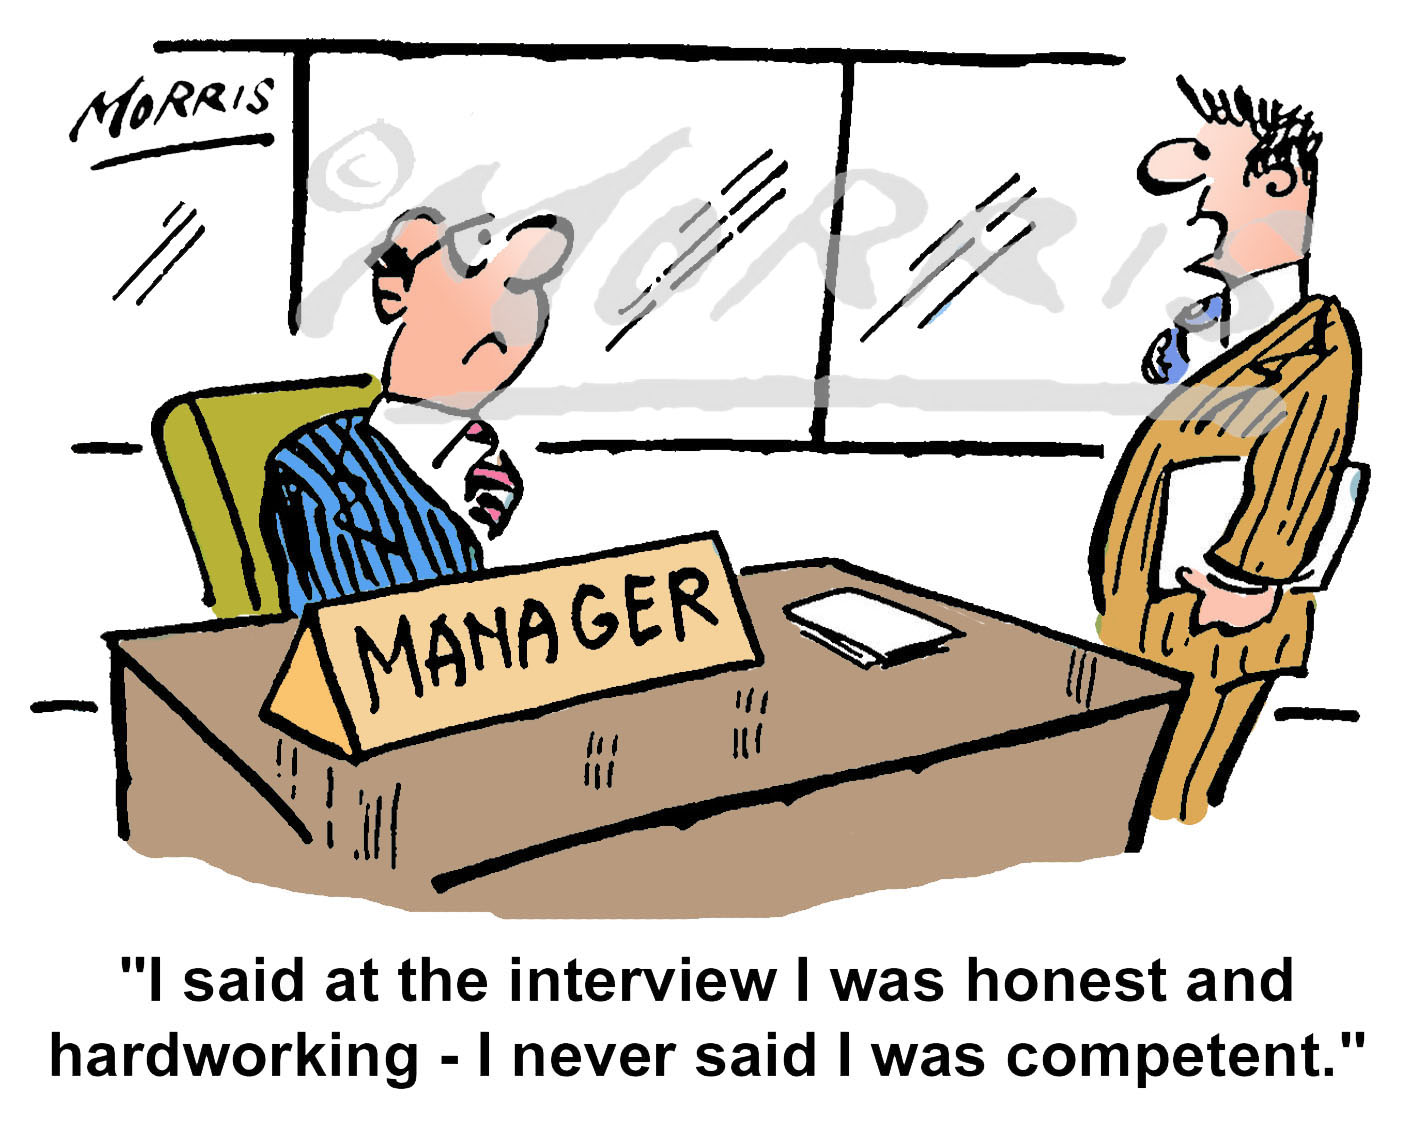 Manager employee interview cartoon – Ref: 0676col